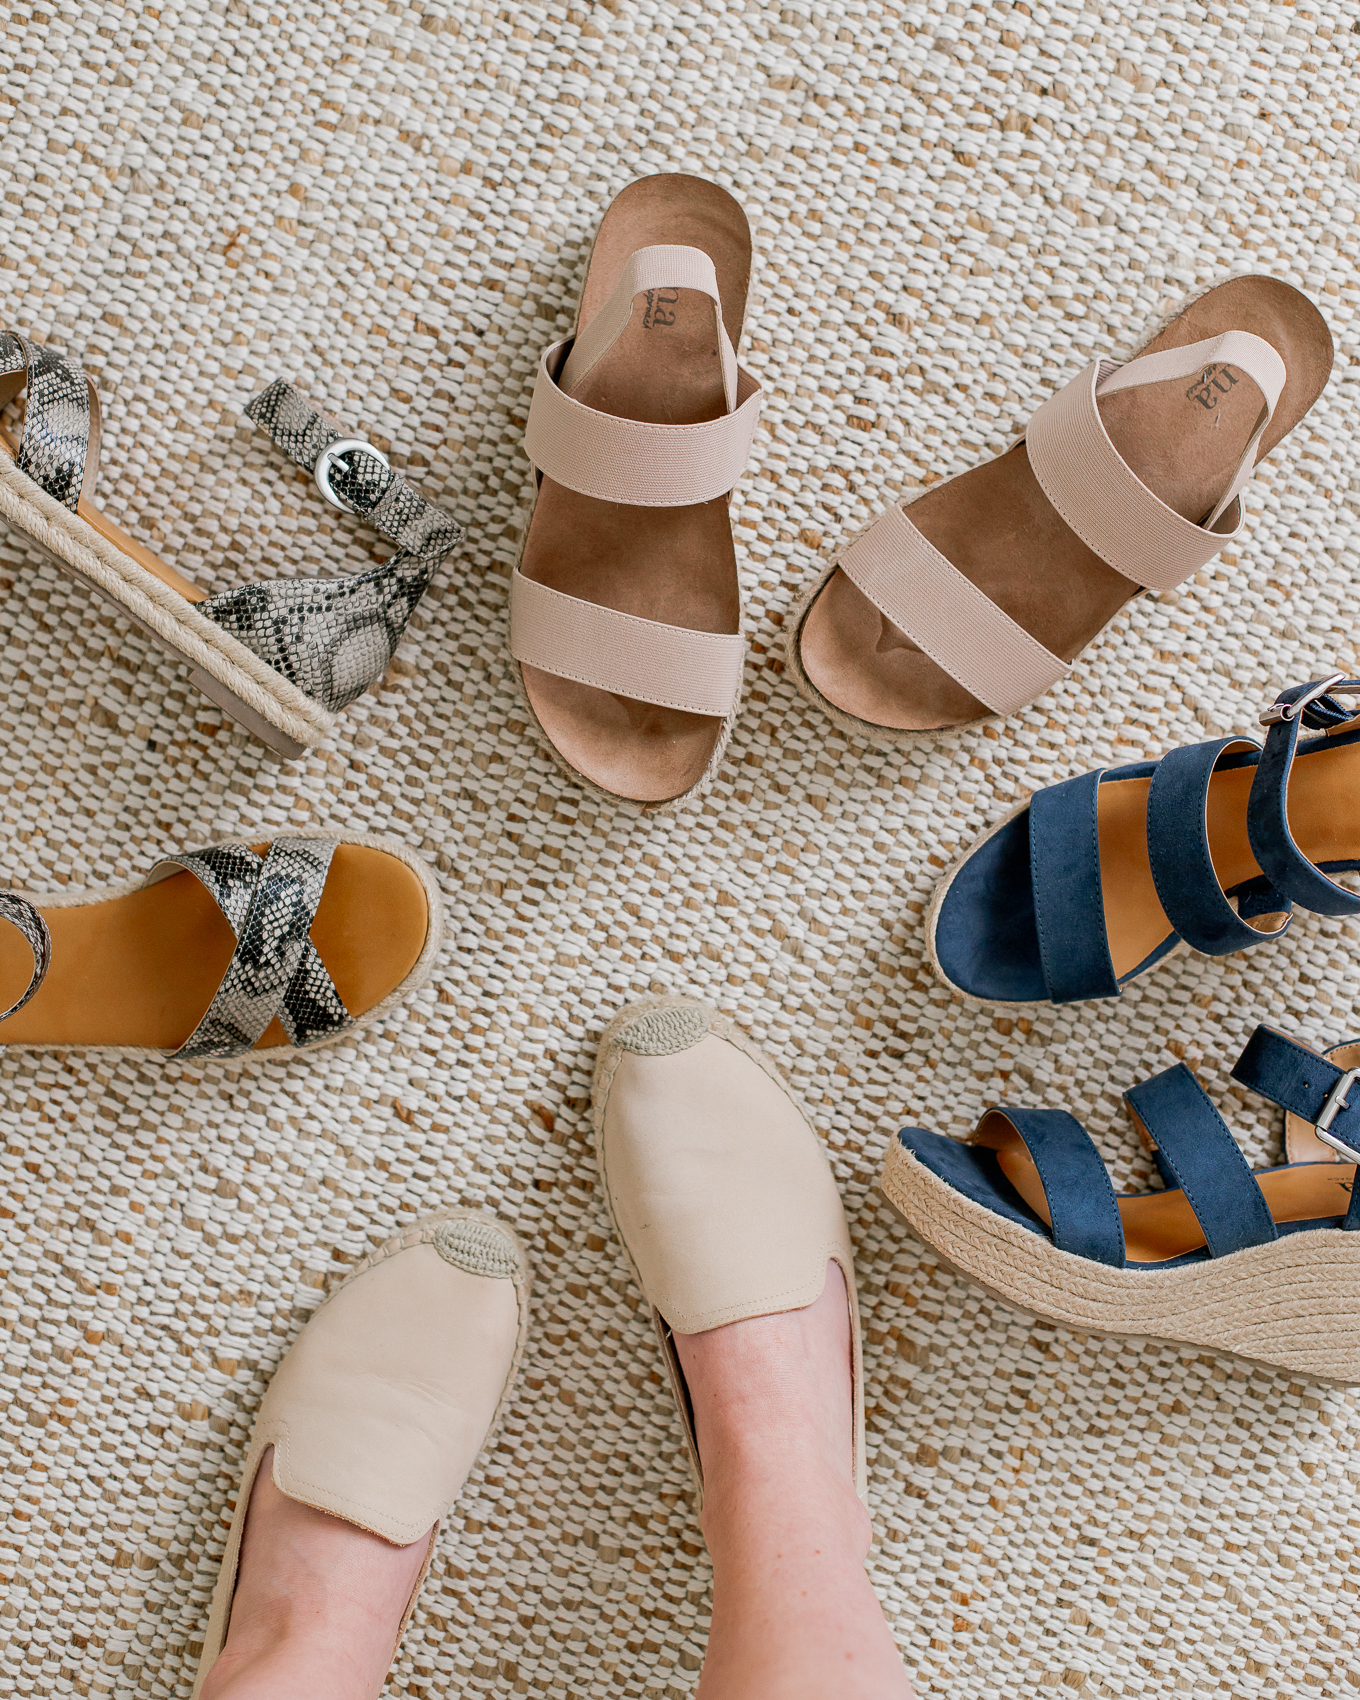 The BEST Affordable Spring Sandals for Women   Louella Reese